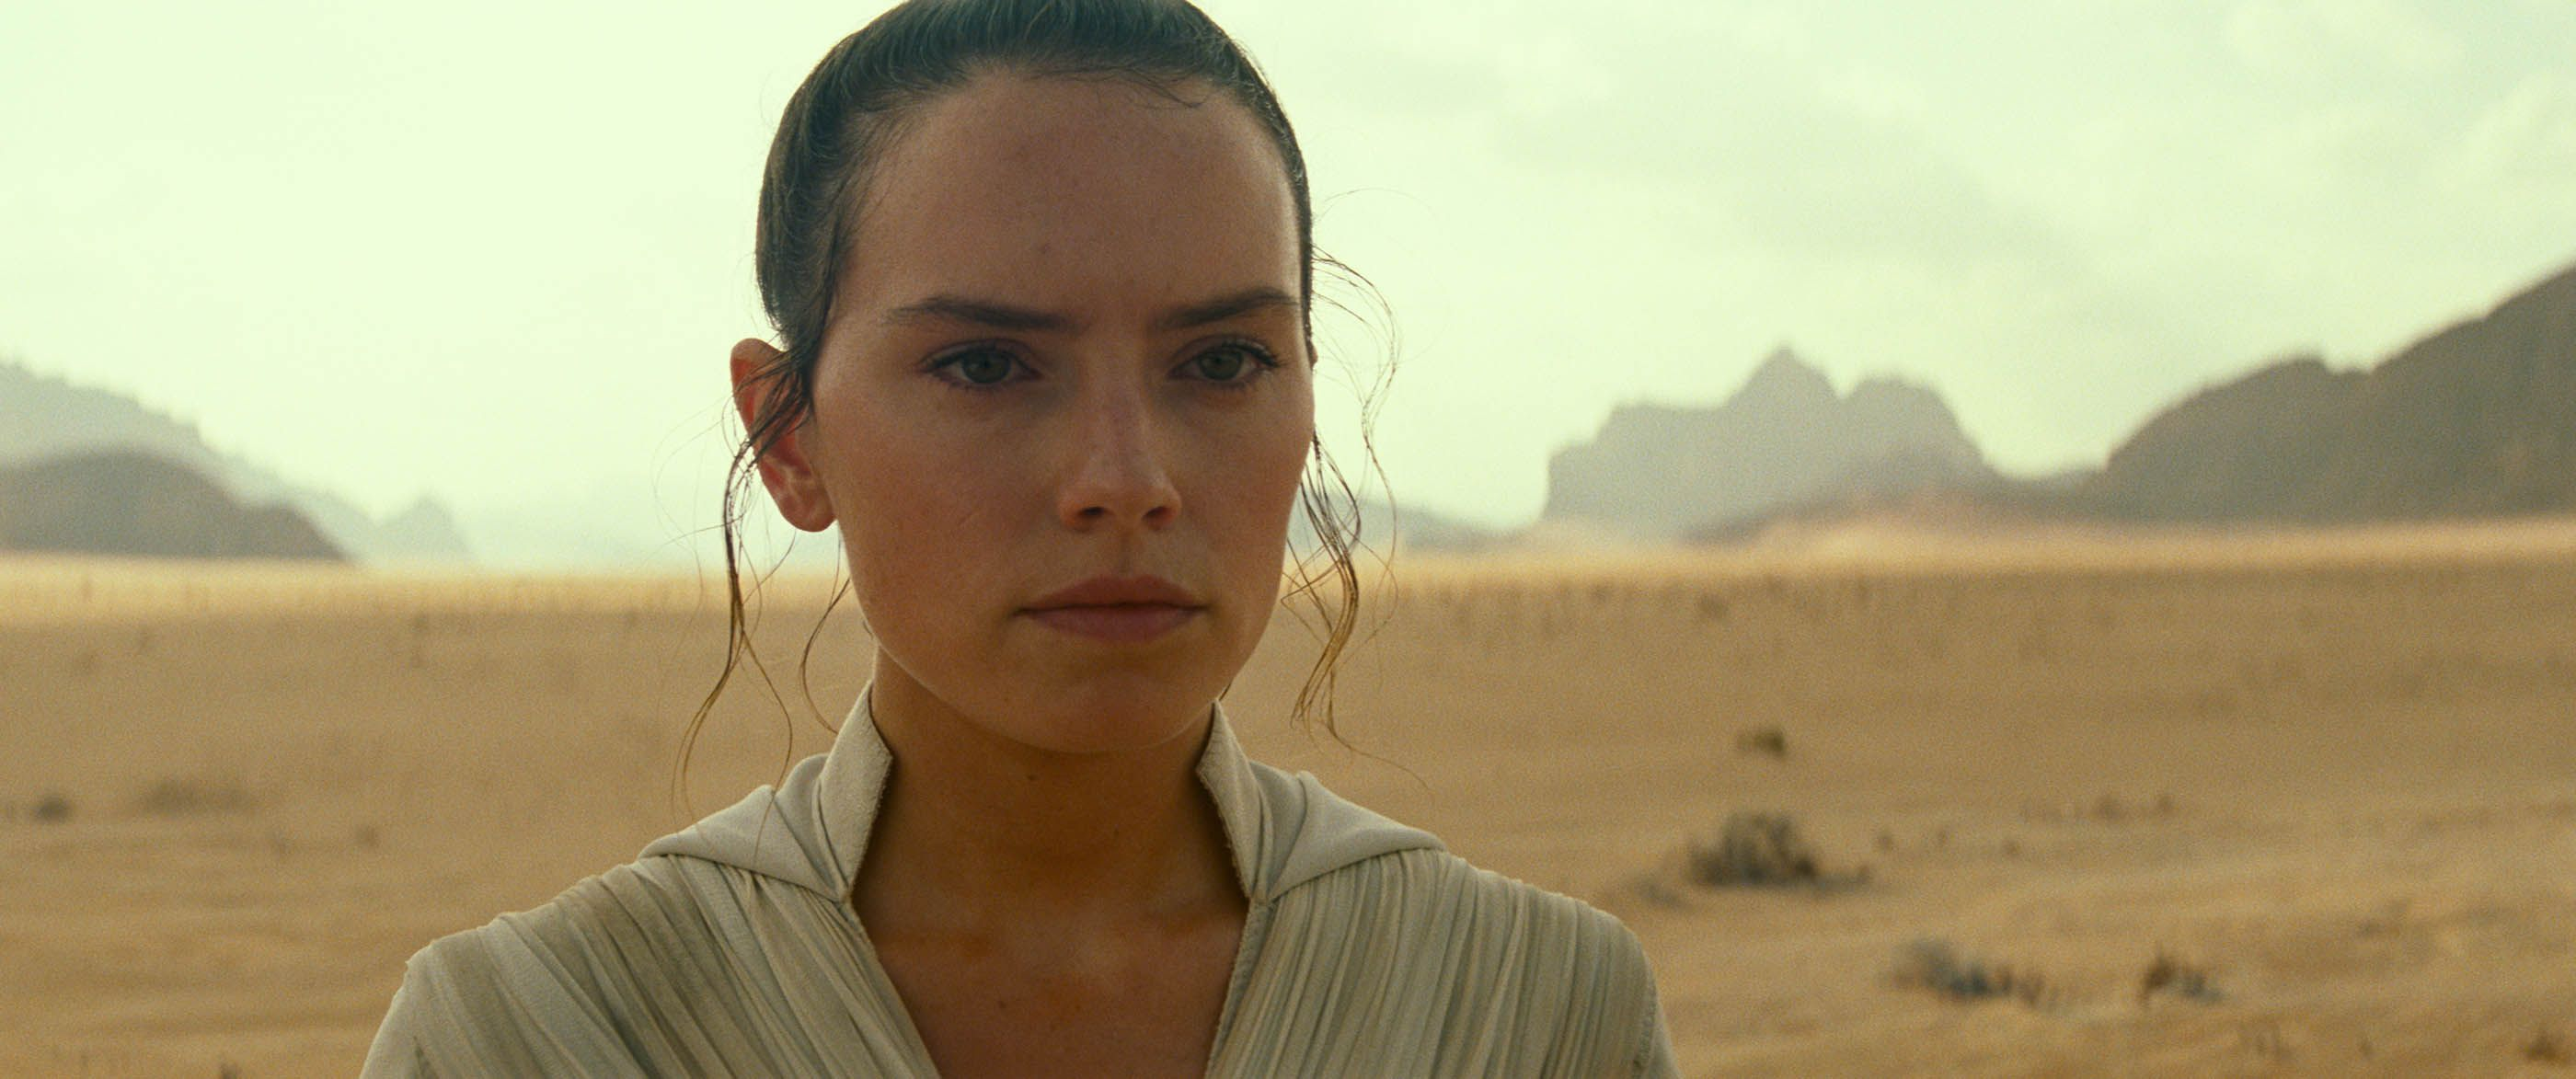 Rey Yellow Lightsaber Meaning Here S What Rey S New Lightsaber In The Rise Of Skywalker Means For Star Wars